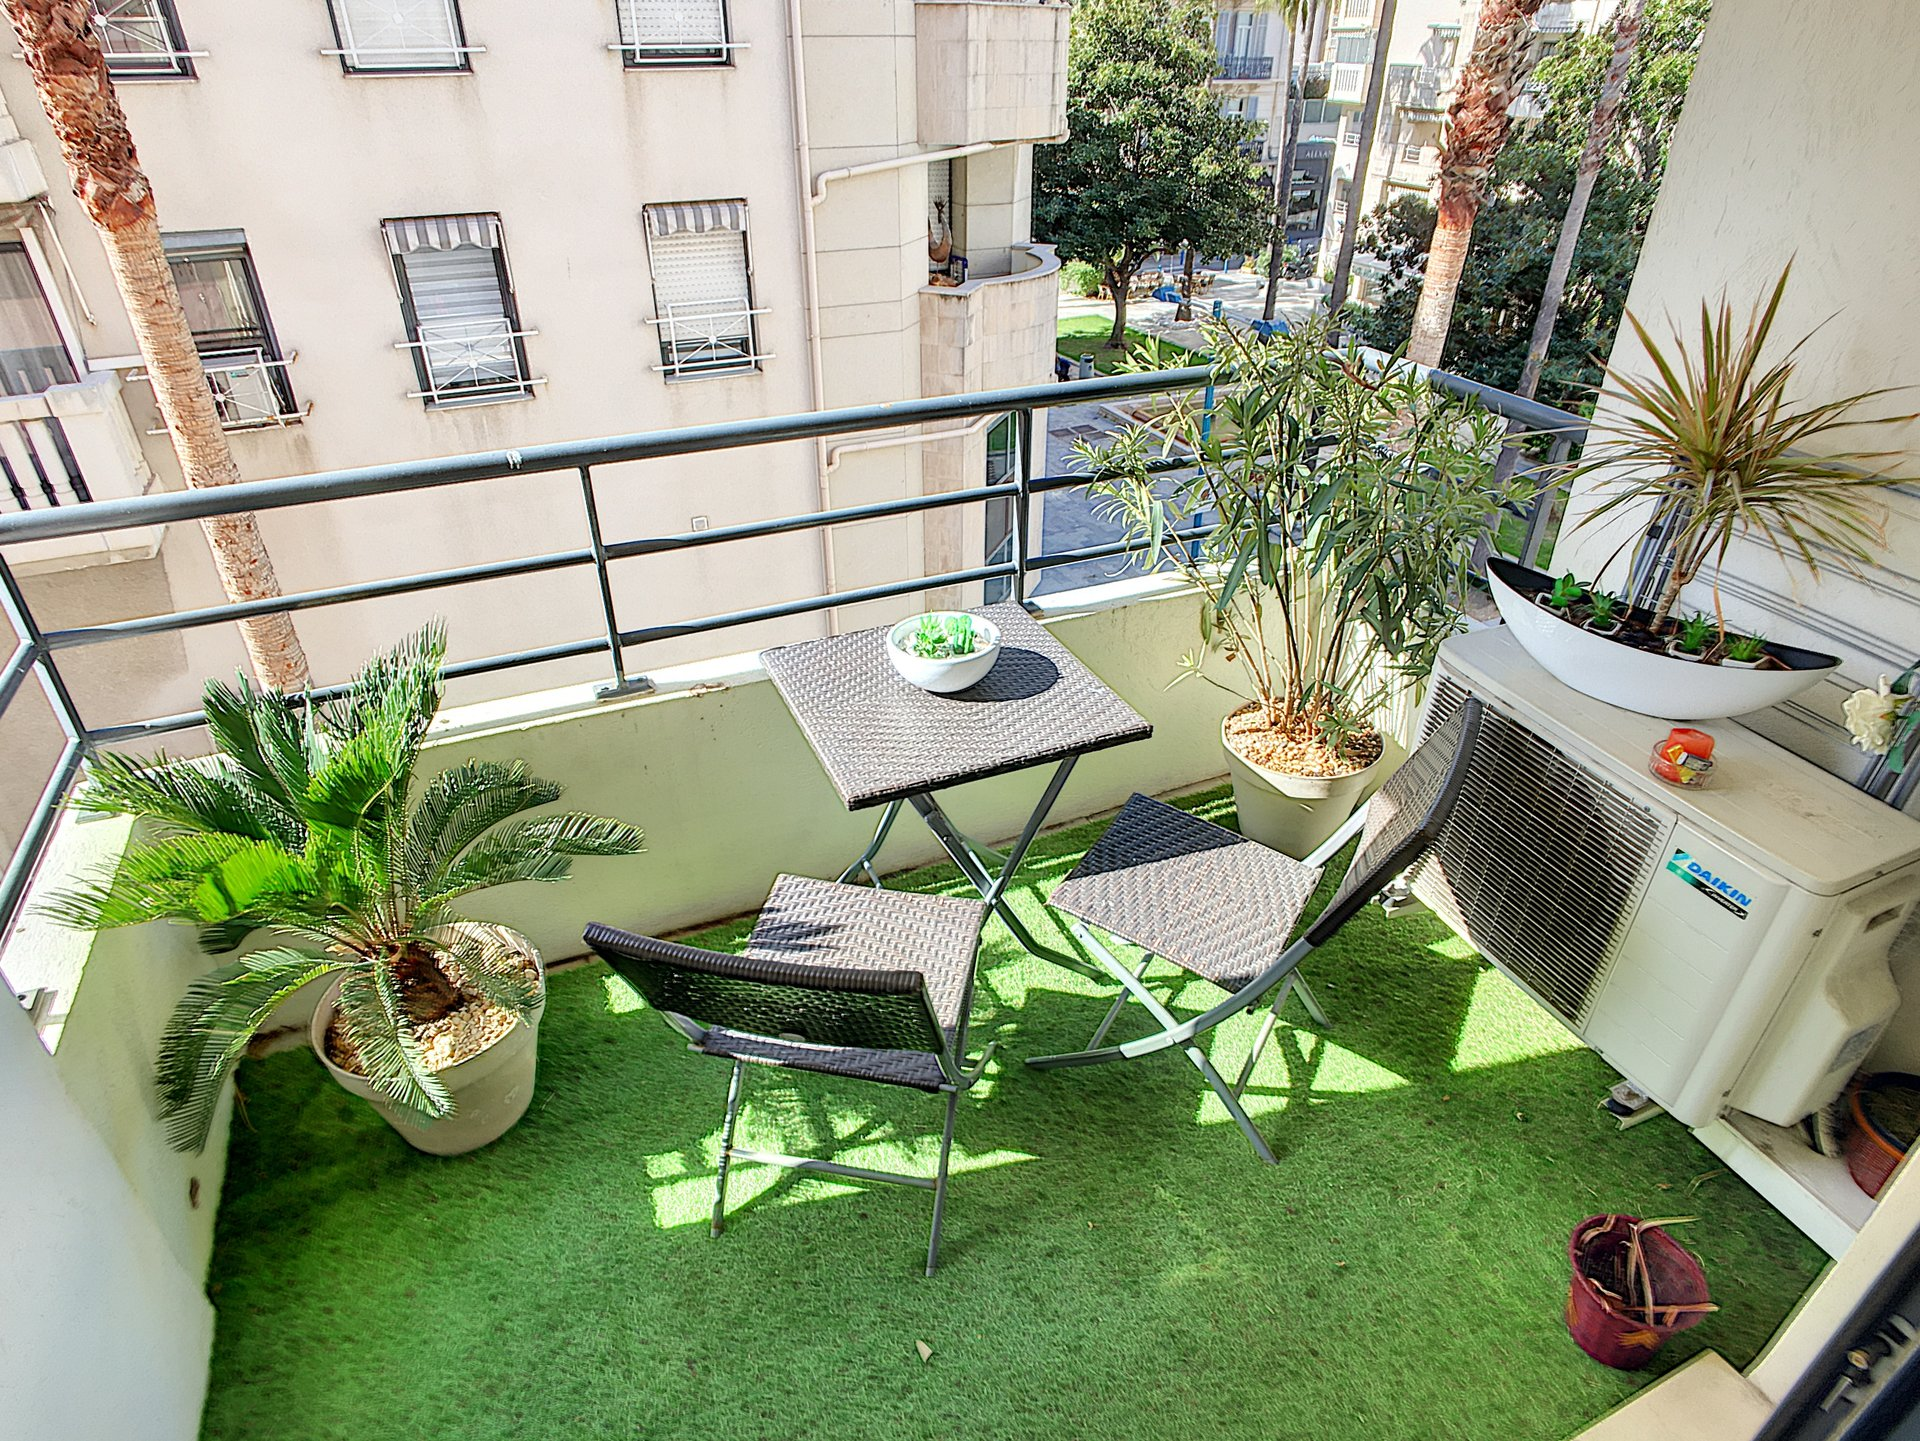 EXCLUSIVITE CANNES RUE D'ANTIBES 2P 40M2